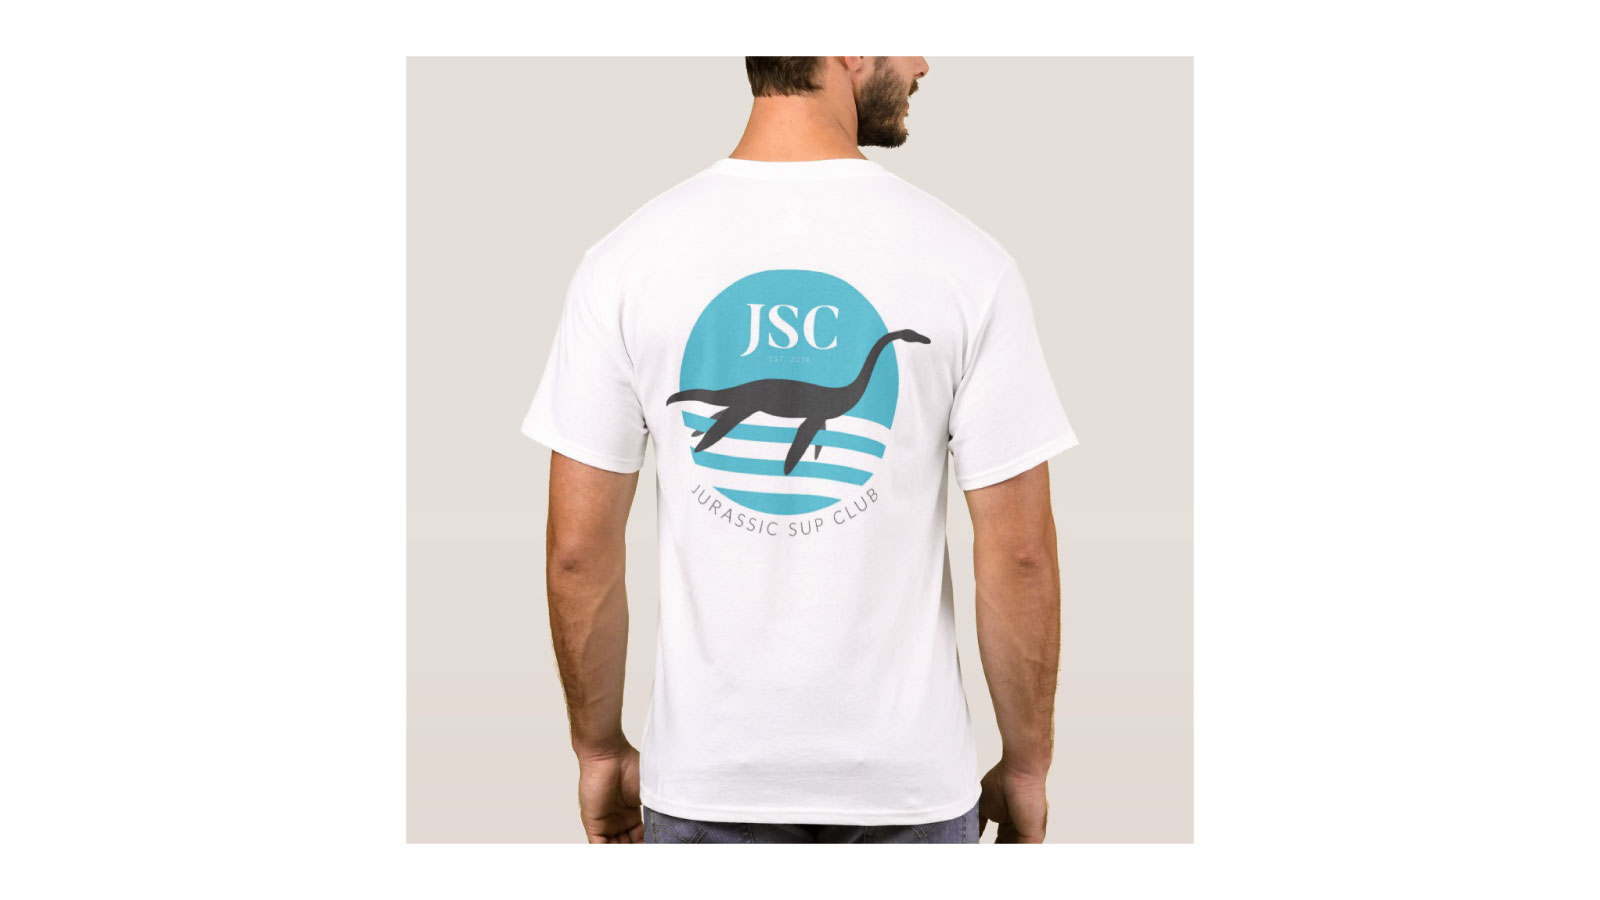 work-jurassic-sup-club-tshirt